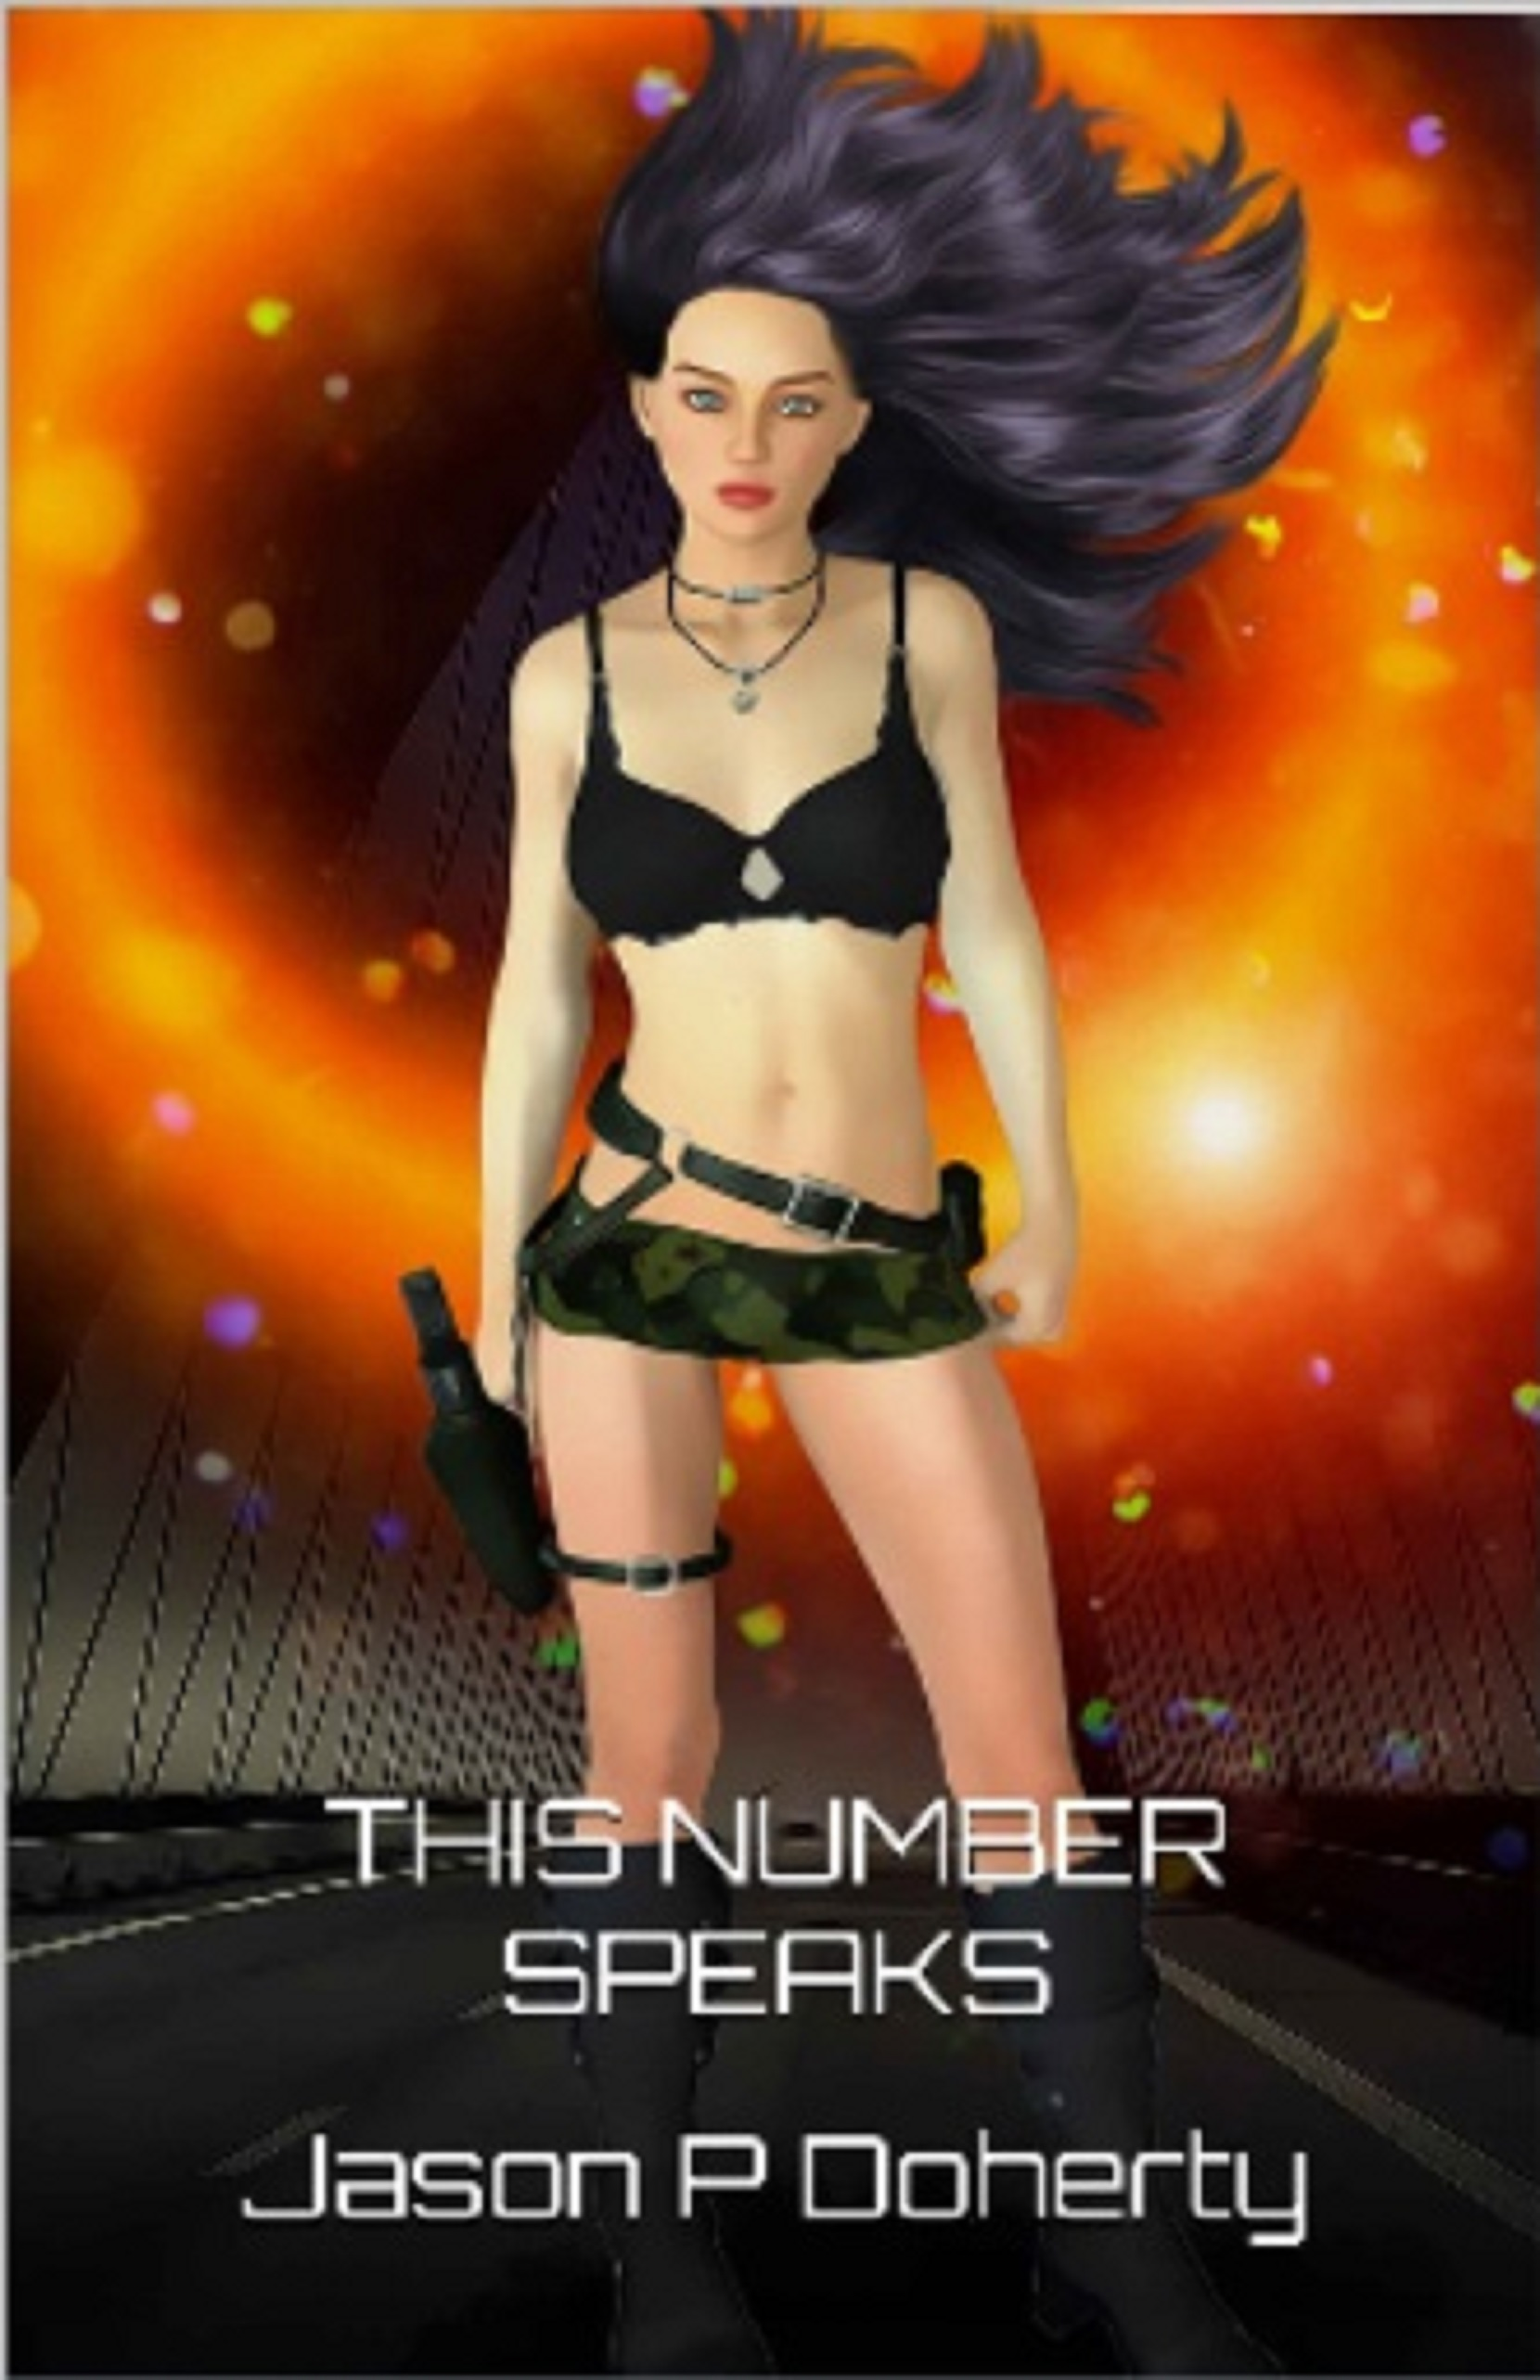 This Number Speaks by Jason P Doherty